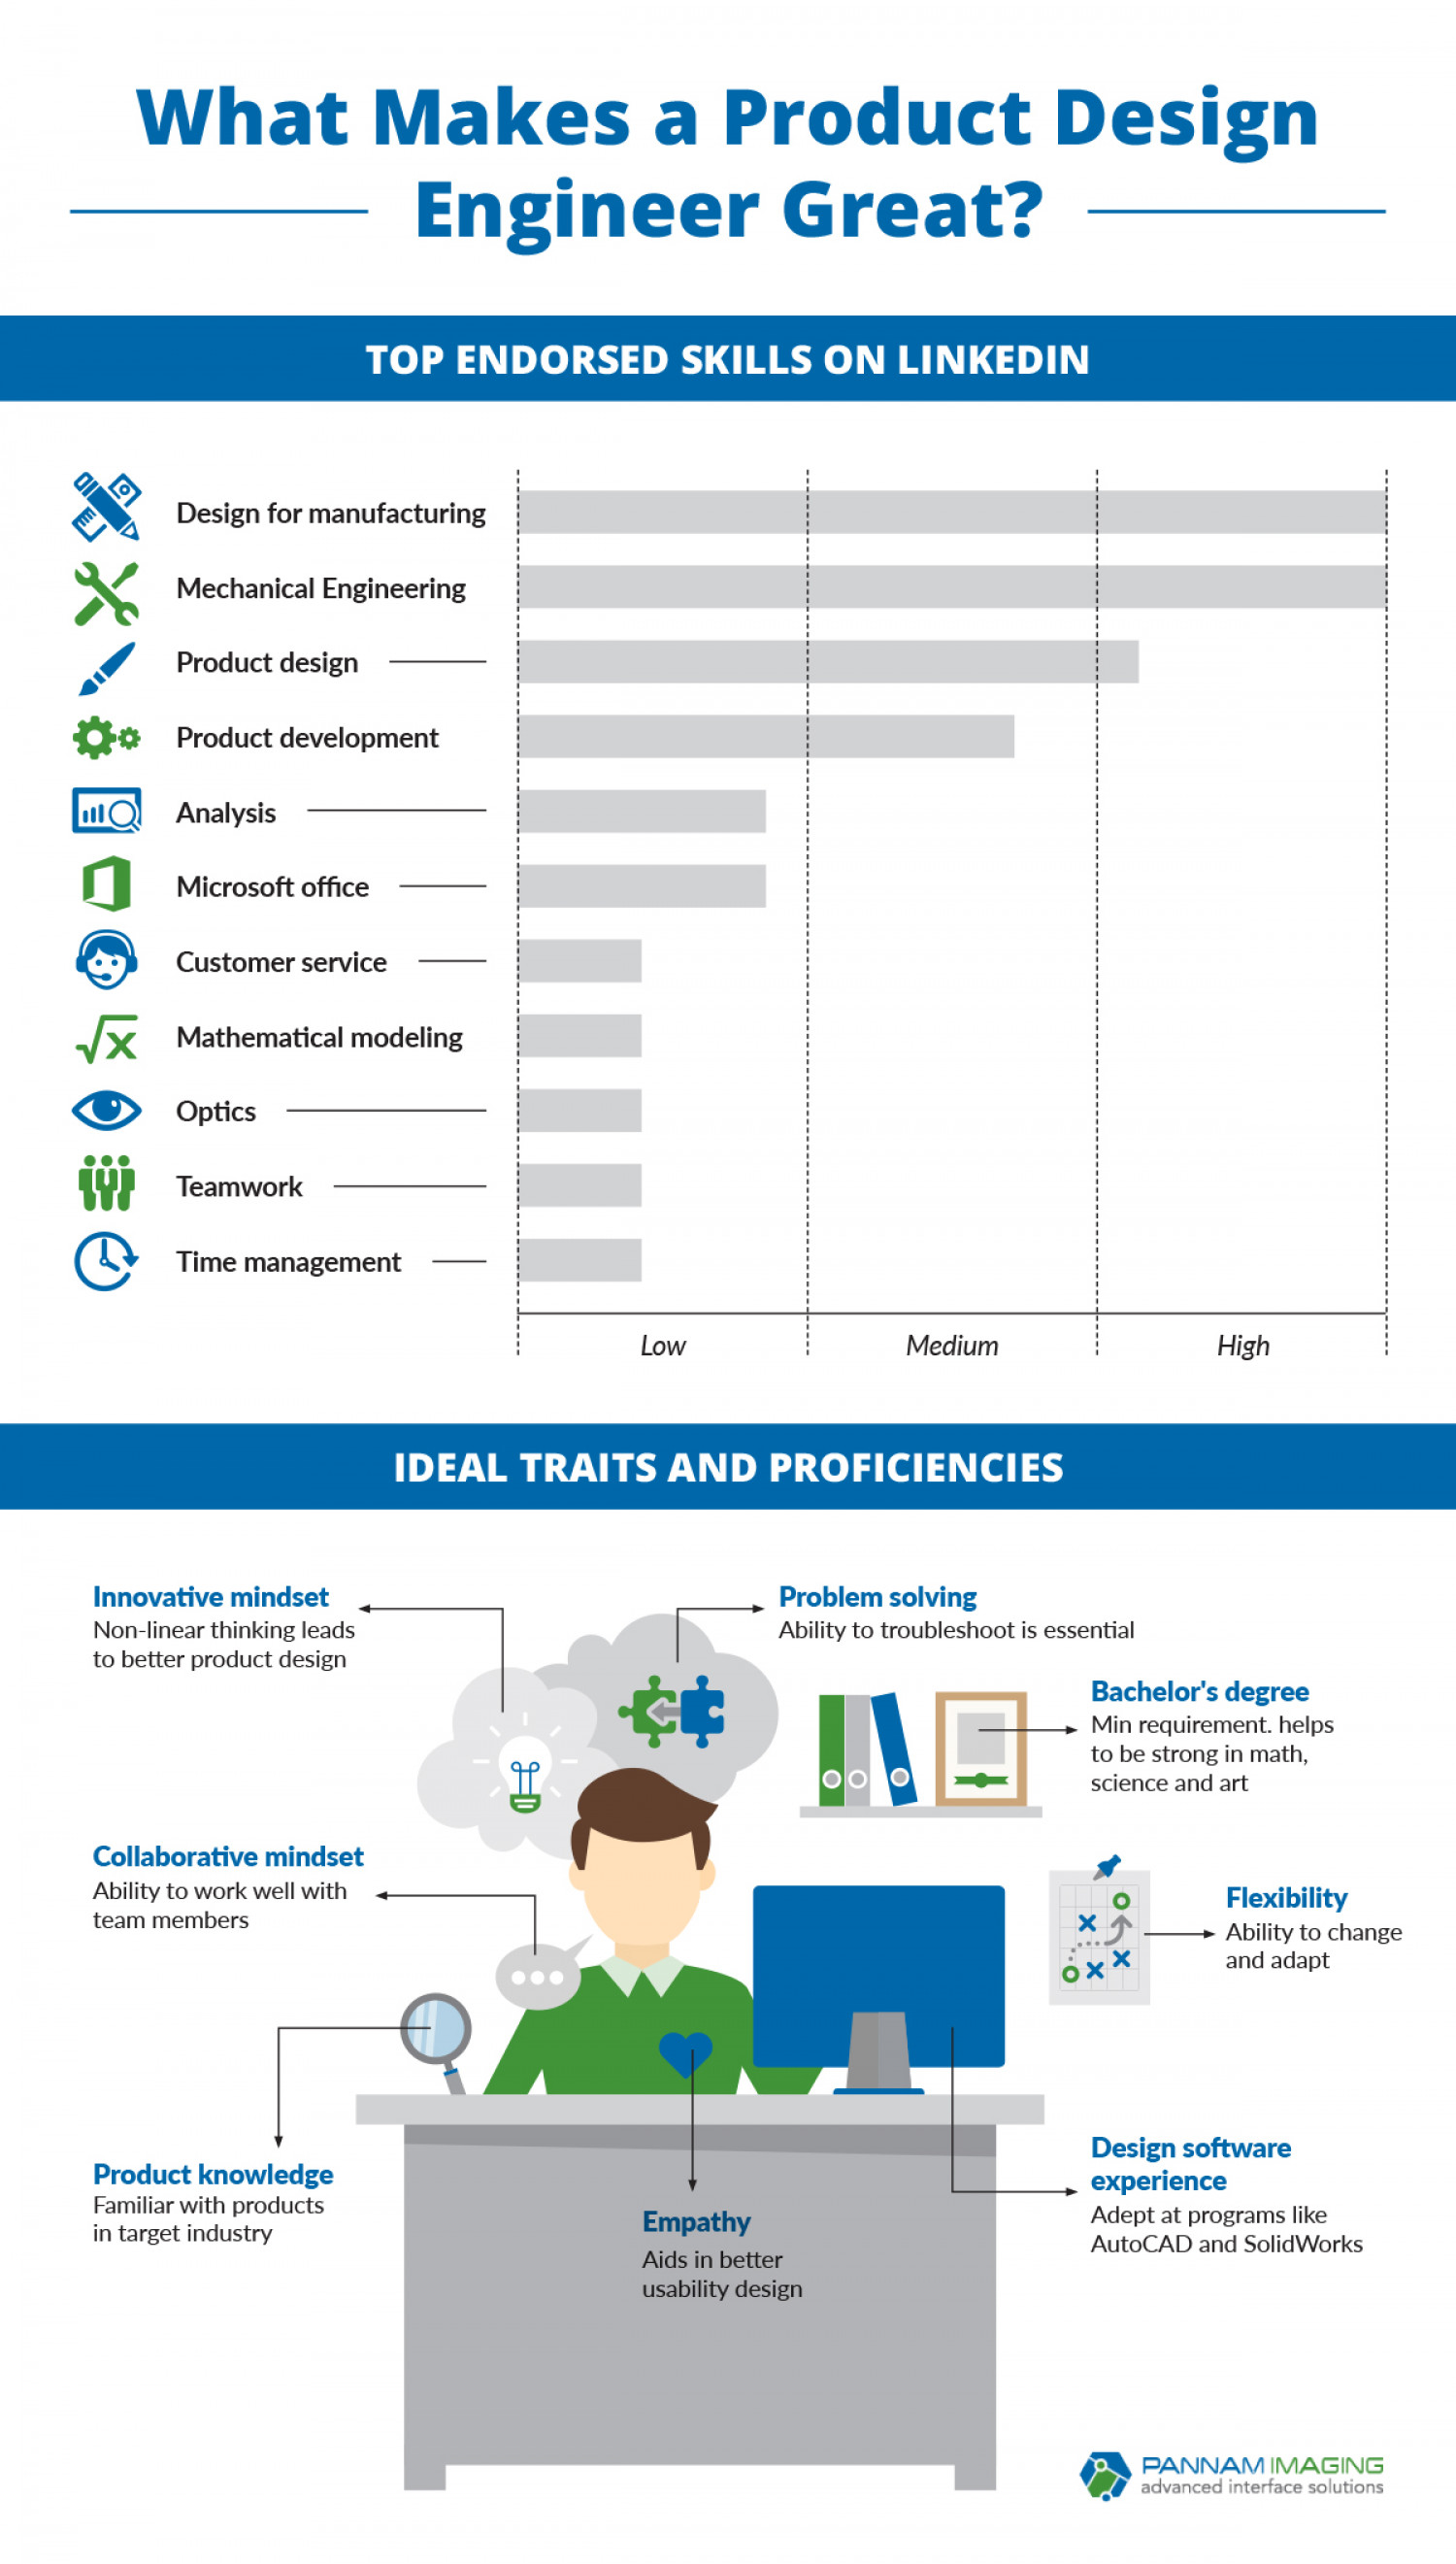 What Makes a Product Design Engineer Great? Infographic